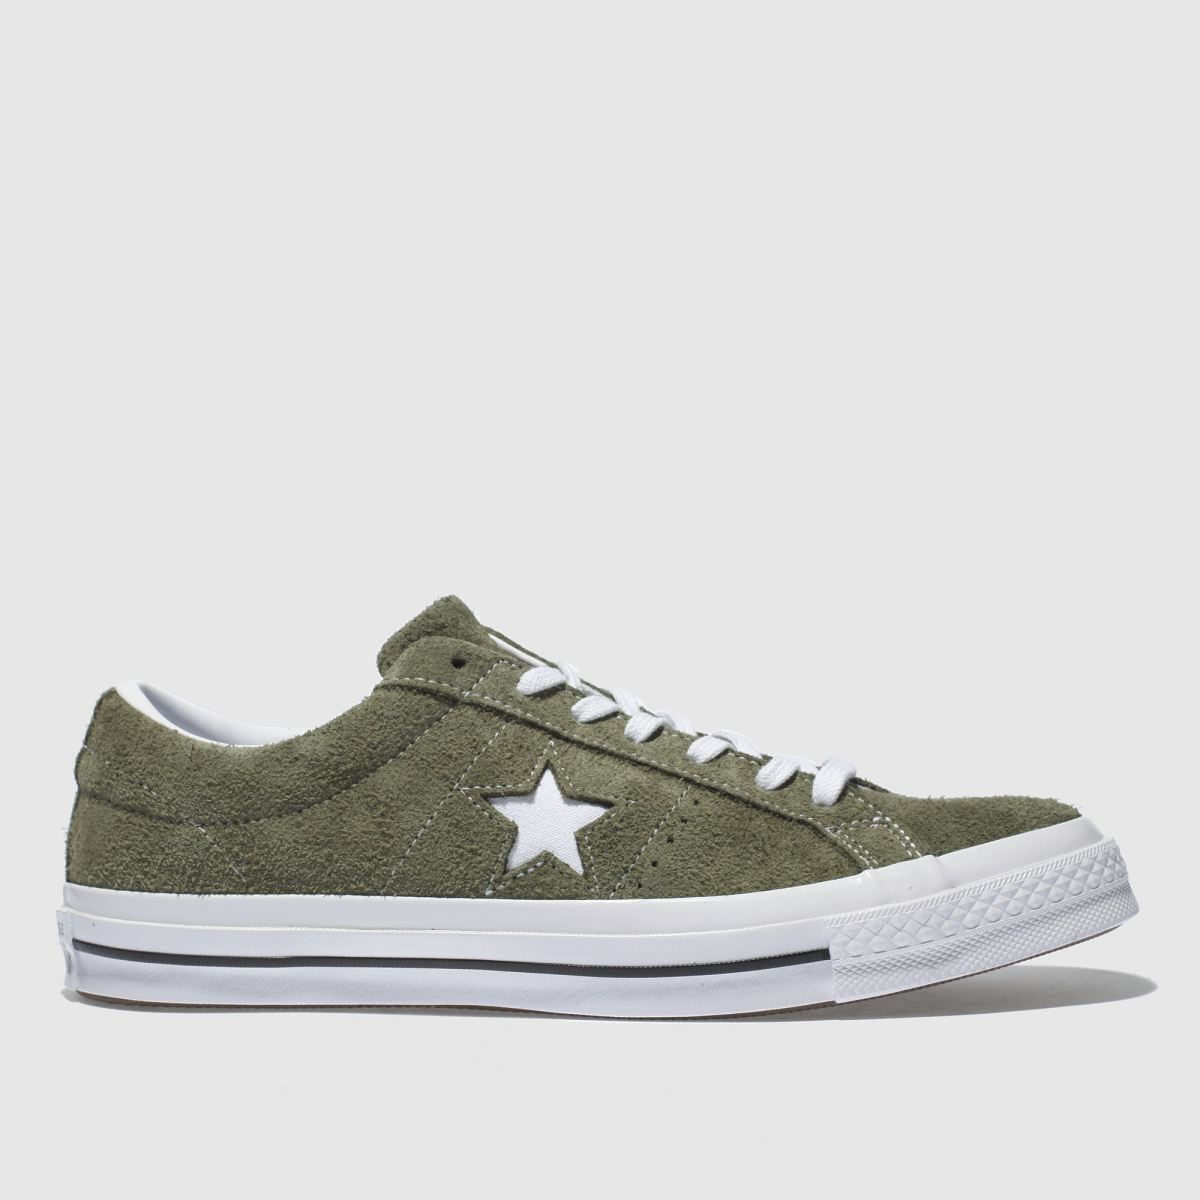 Converse Khaki One Star Ox Vintage Suede Trainers